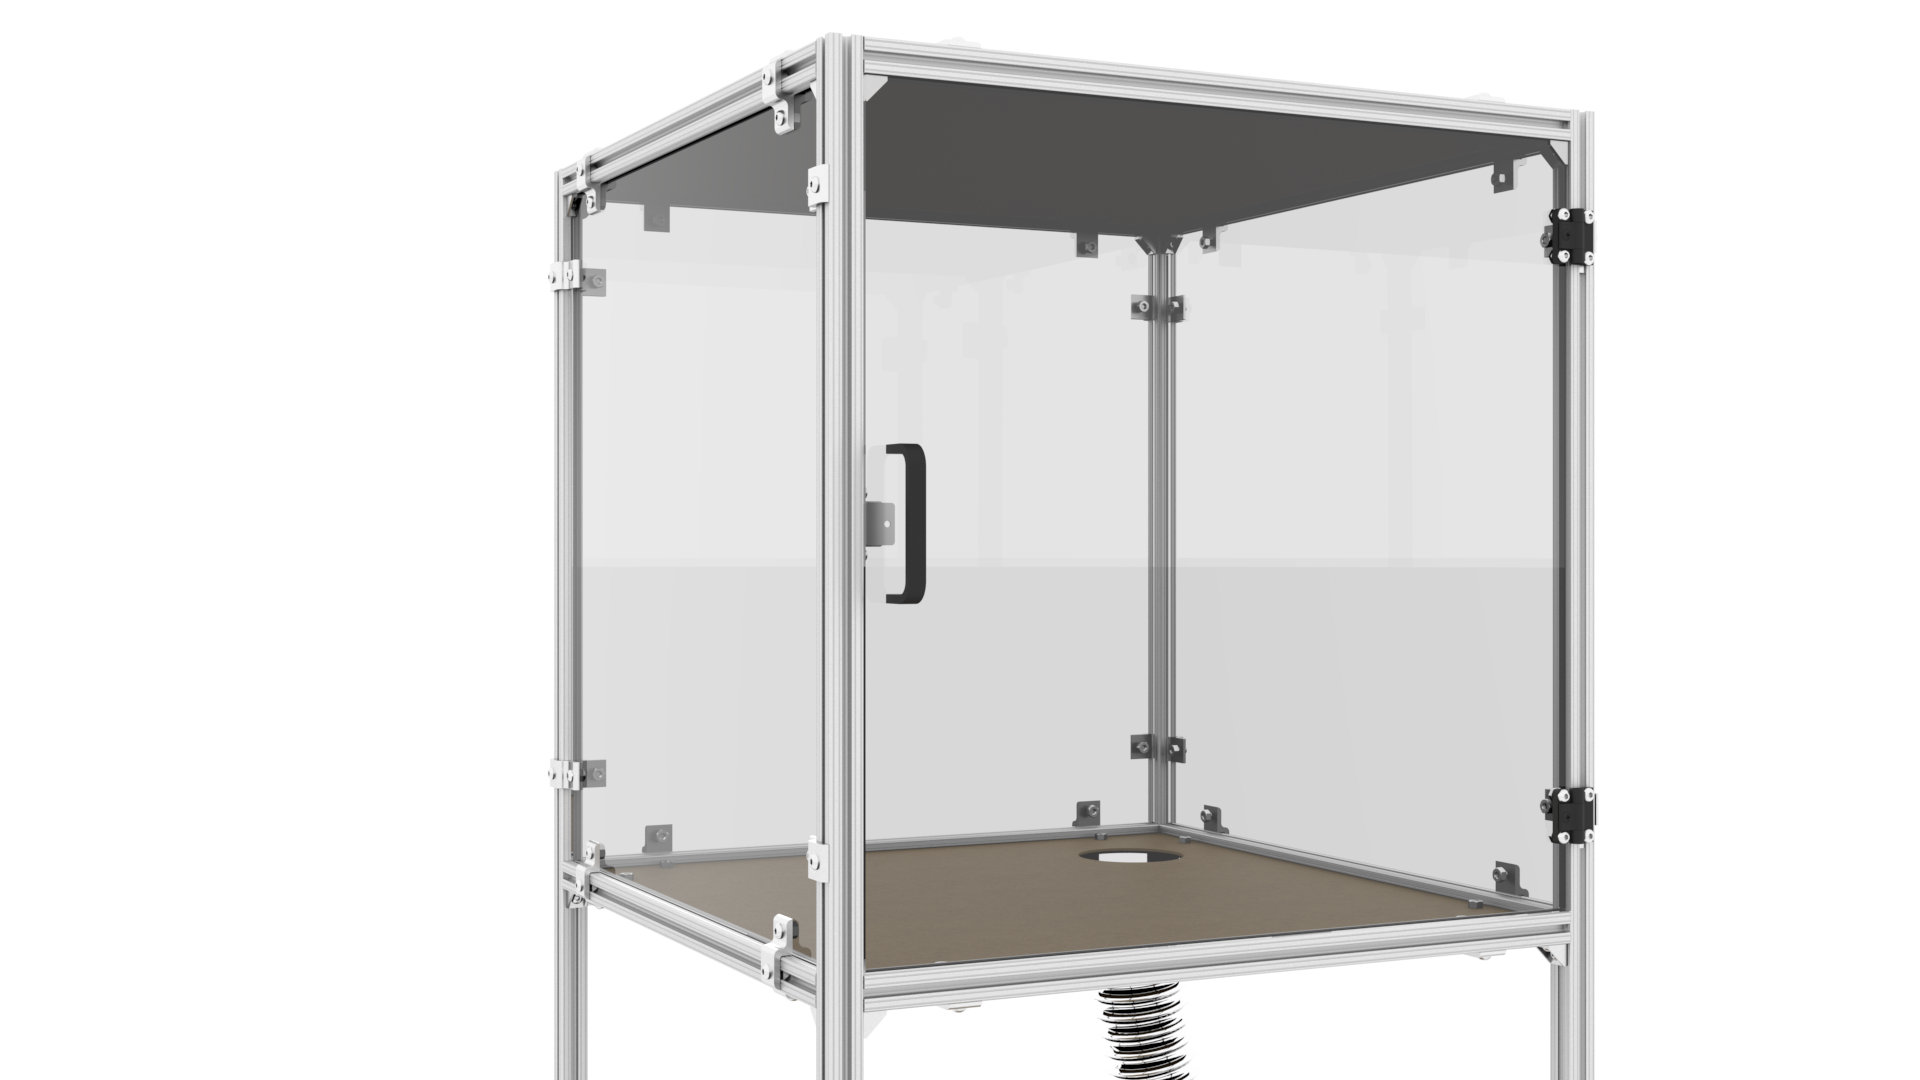 "You should now have a fully-enclosed tool cabinet that will easily fit a kit 3D printer! Use a hole saw, or chew through like a beaver, to make a 4"" cut-out in the shelf panel, then press-fit a flexible hose to ventilate the cabinet. Use some RTV or duct tape to seal up the hole, and send the hose out a window. Alternatively, do not install the hose and enjoy a face full of VOCs and aerosol nanoplastics every time you open the door!"